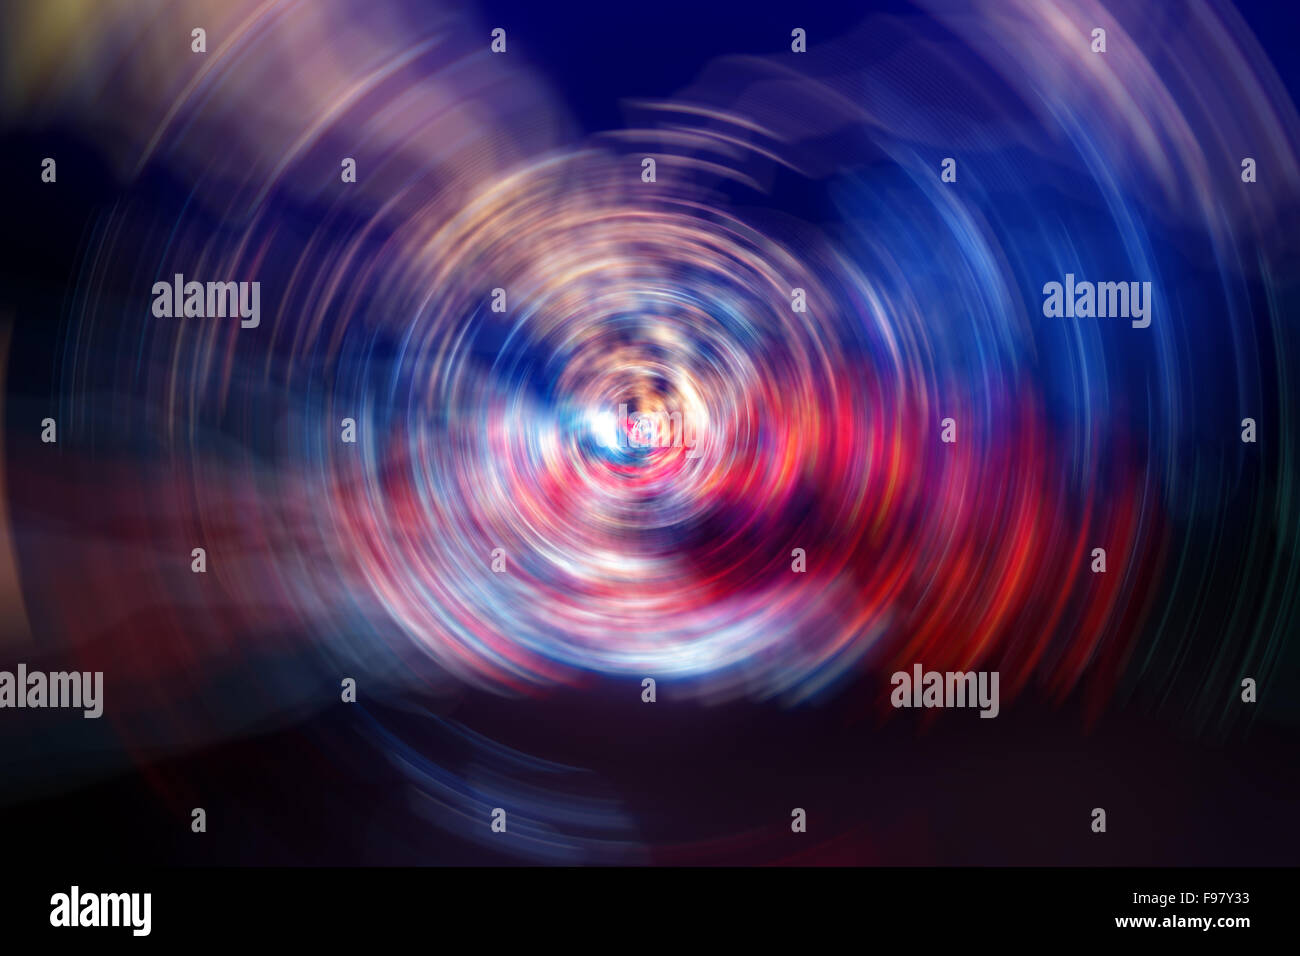 Spinning Neon LED Abstract lights form a centrally moving blur, radiating from a central core. - Stock Image